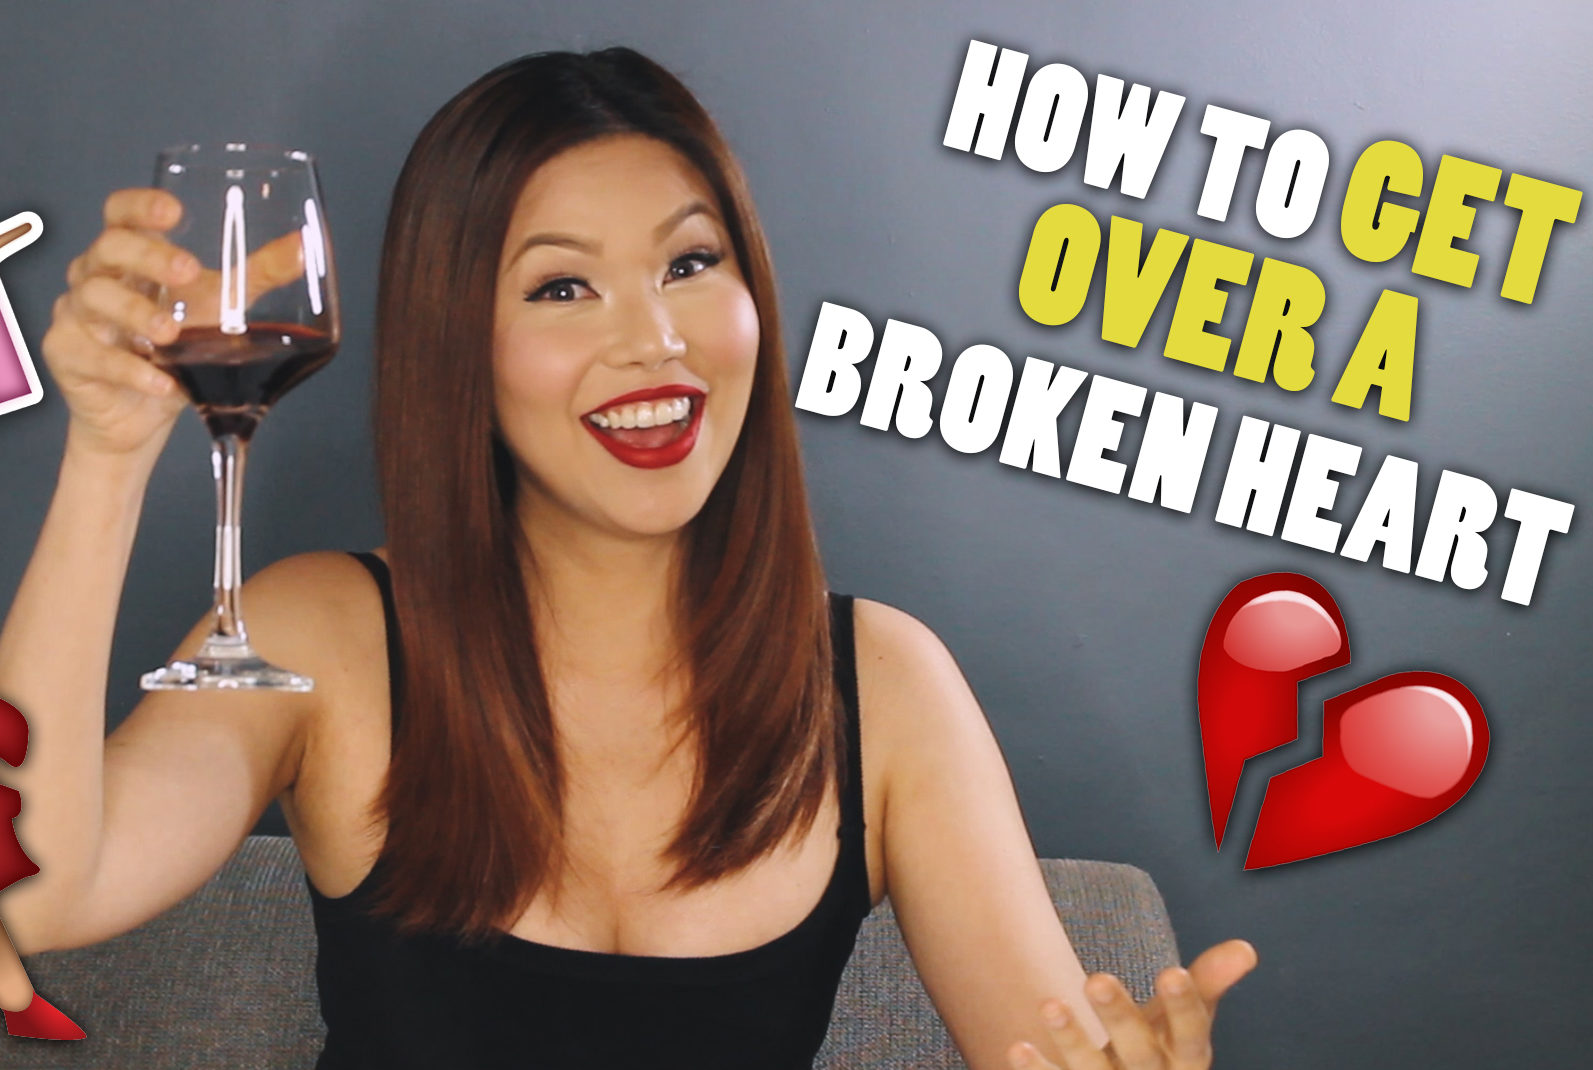 how to get over a broken relationship fast